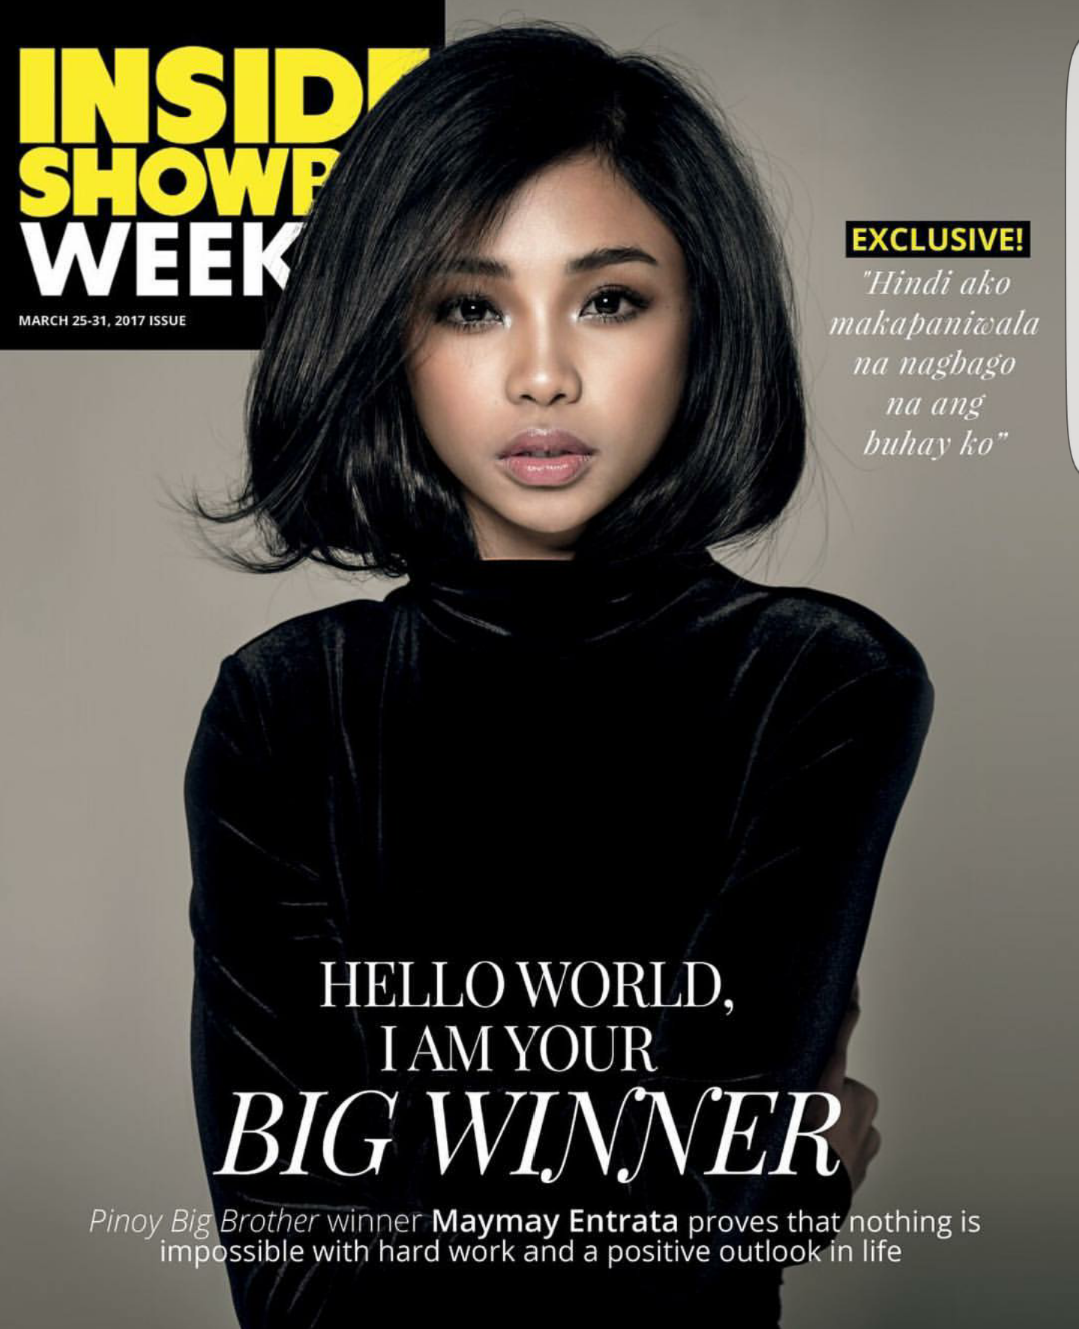 Maymay Entrata on the Cover of Inside Showbiz Weekly